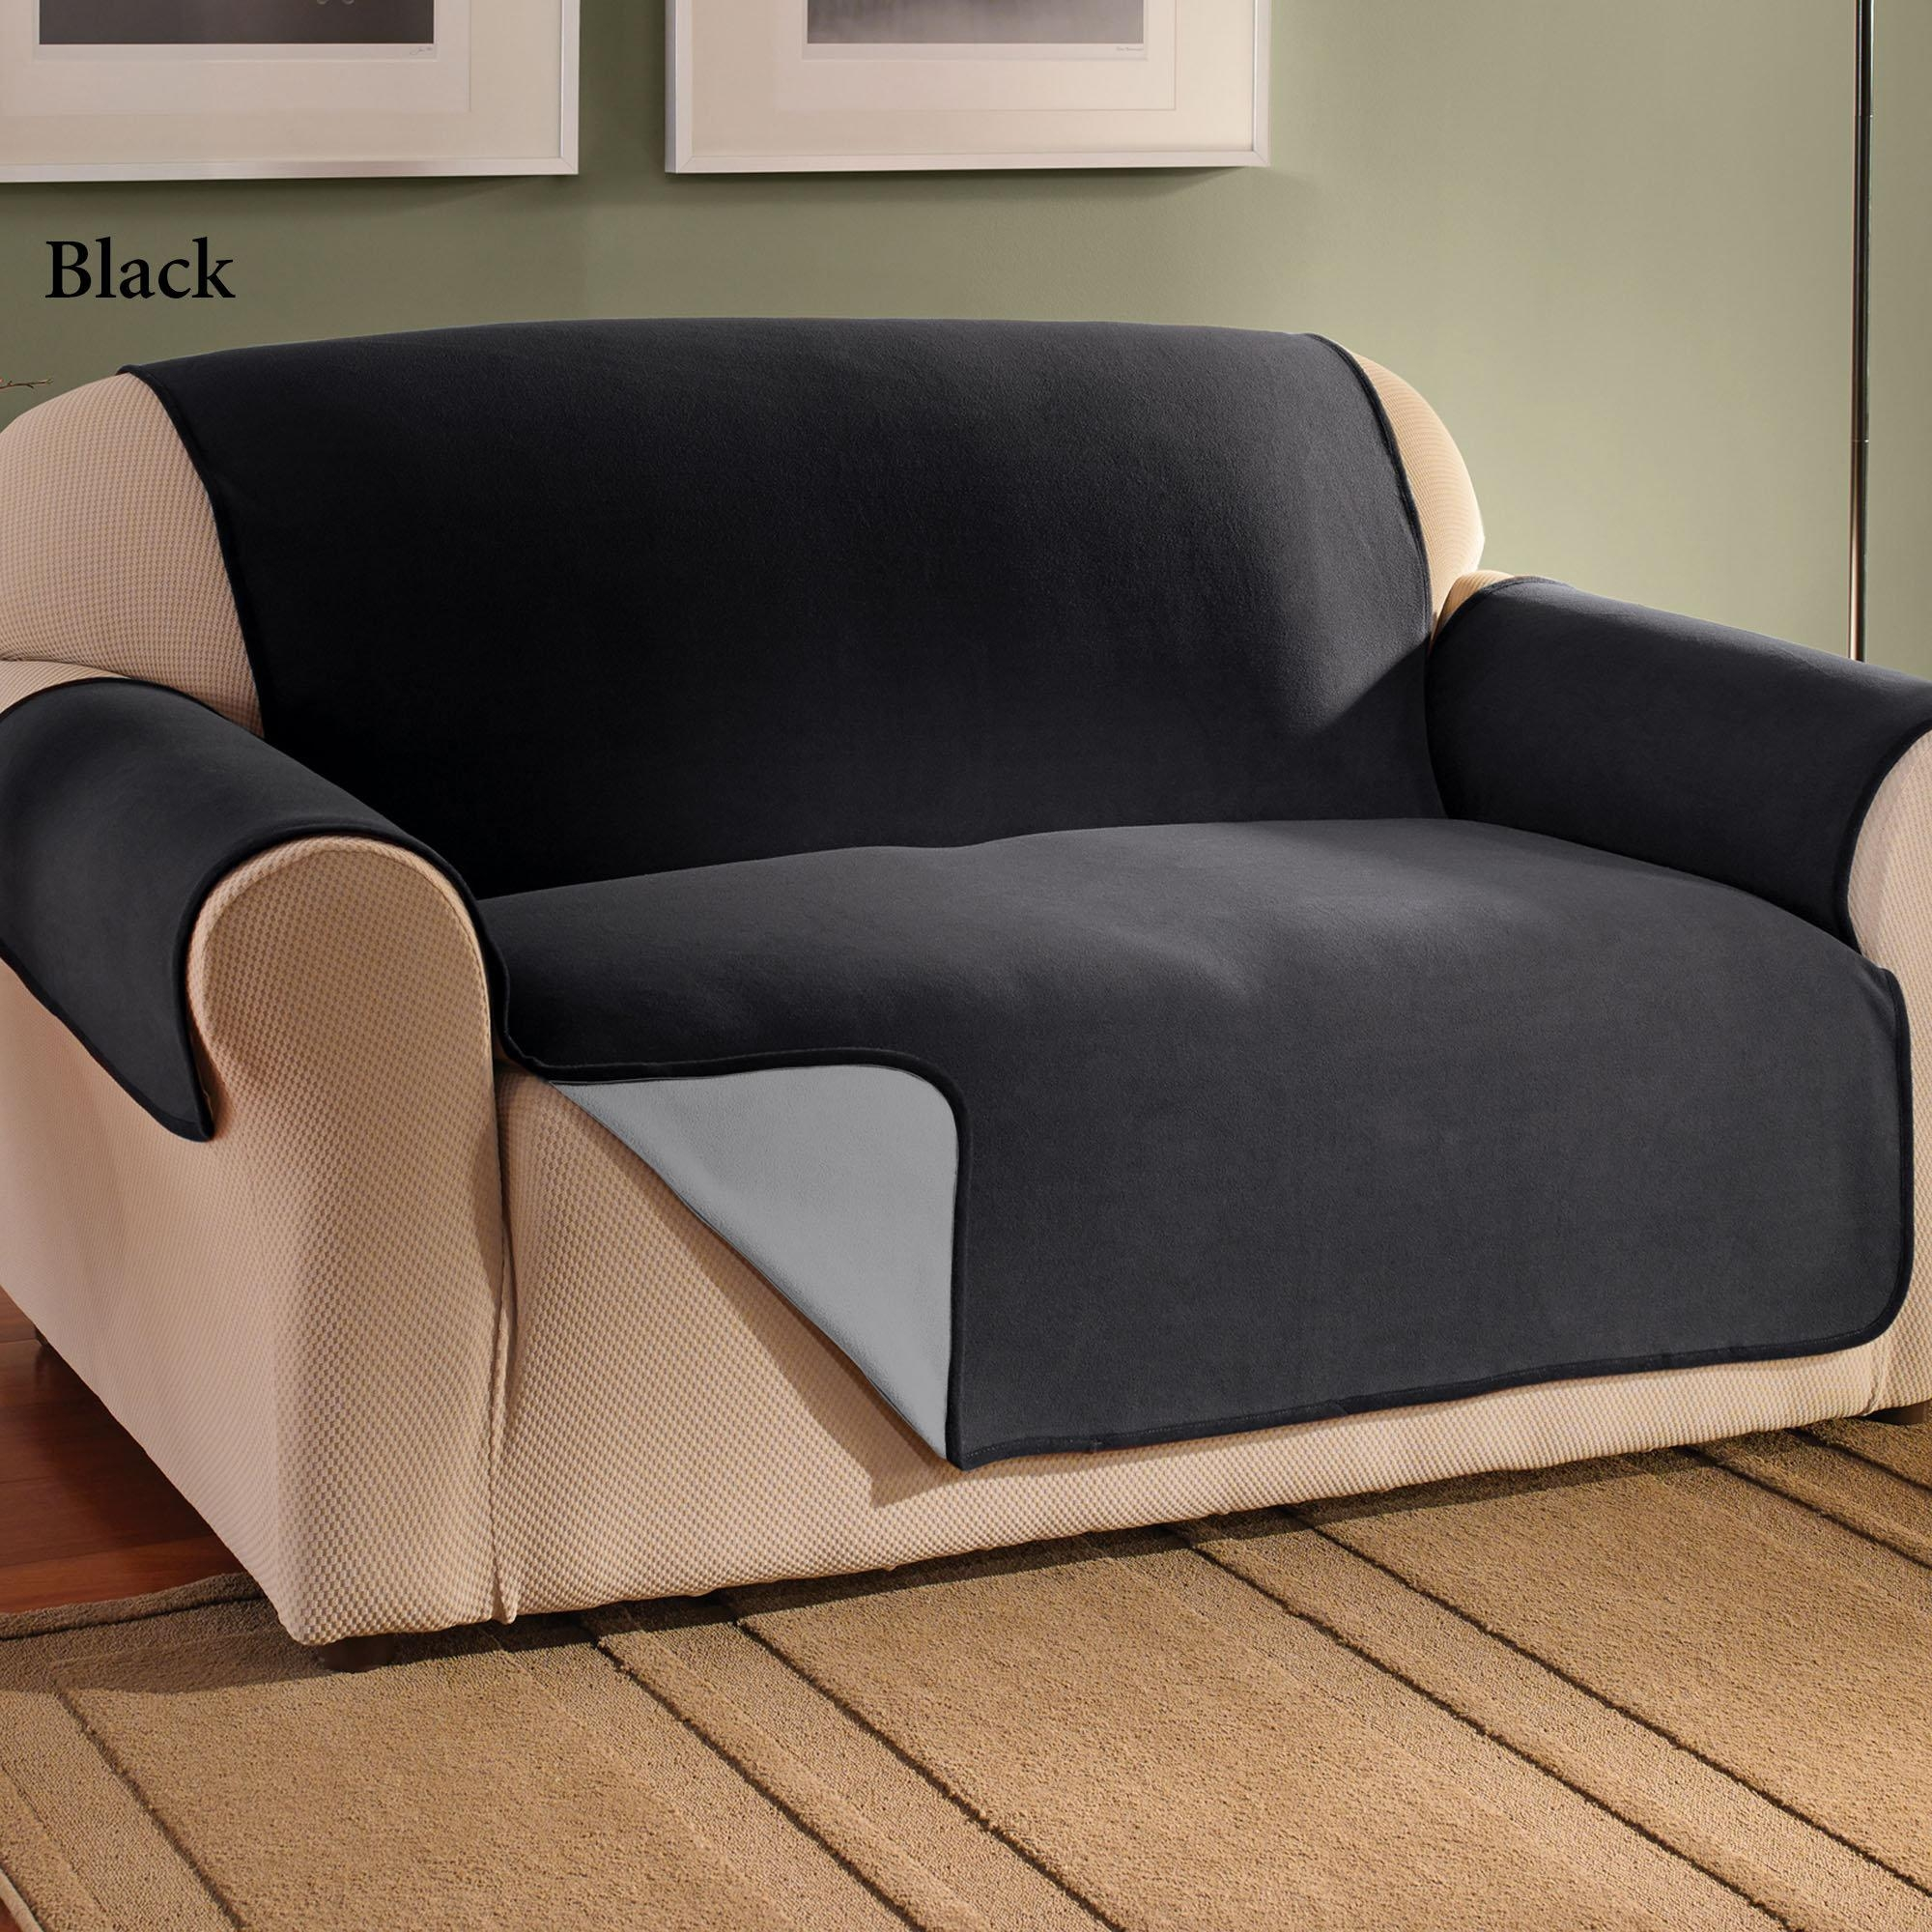 Furniture: Comfortable Cream Walmart Sofa Covers On Walmart Rugs With Regard To Sofas With Black Cover (View 4 of 20)